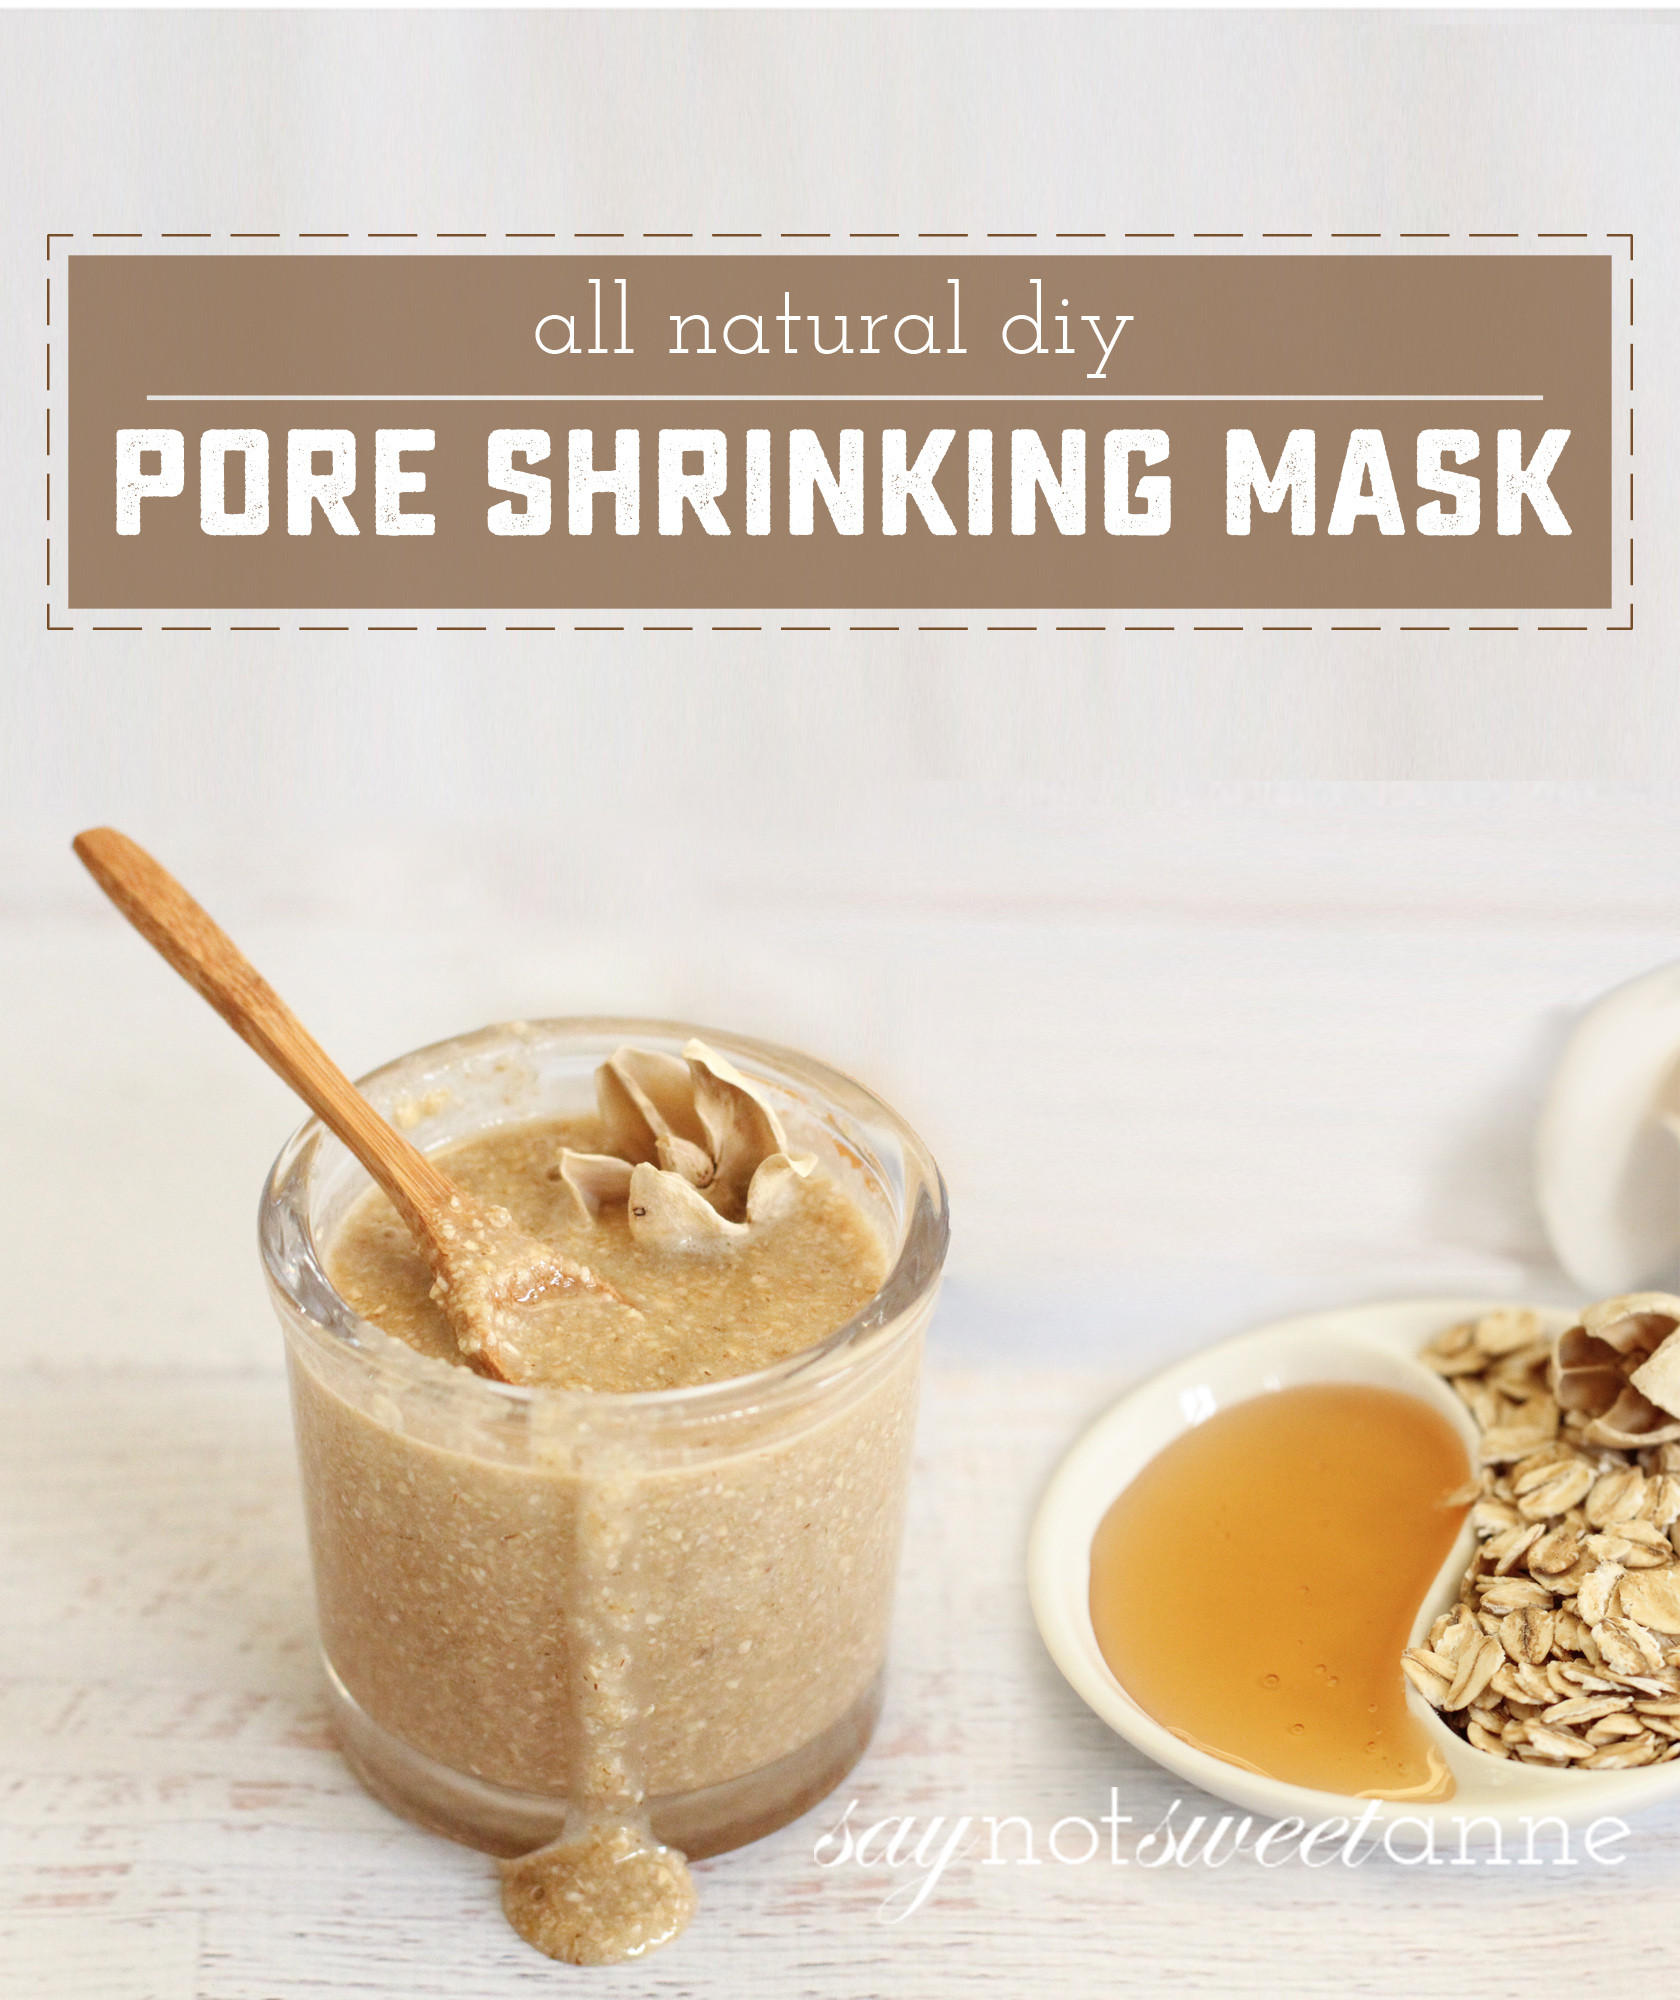 Pore Shrinking Mask DIY  How To Make an Amazing Pore Shrinking Mask Sweet Anne